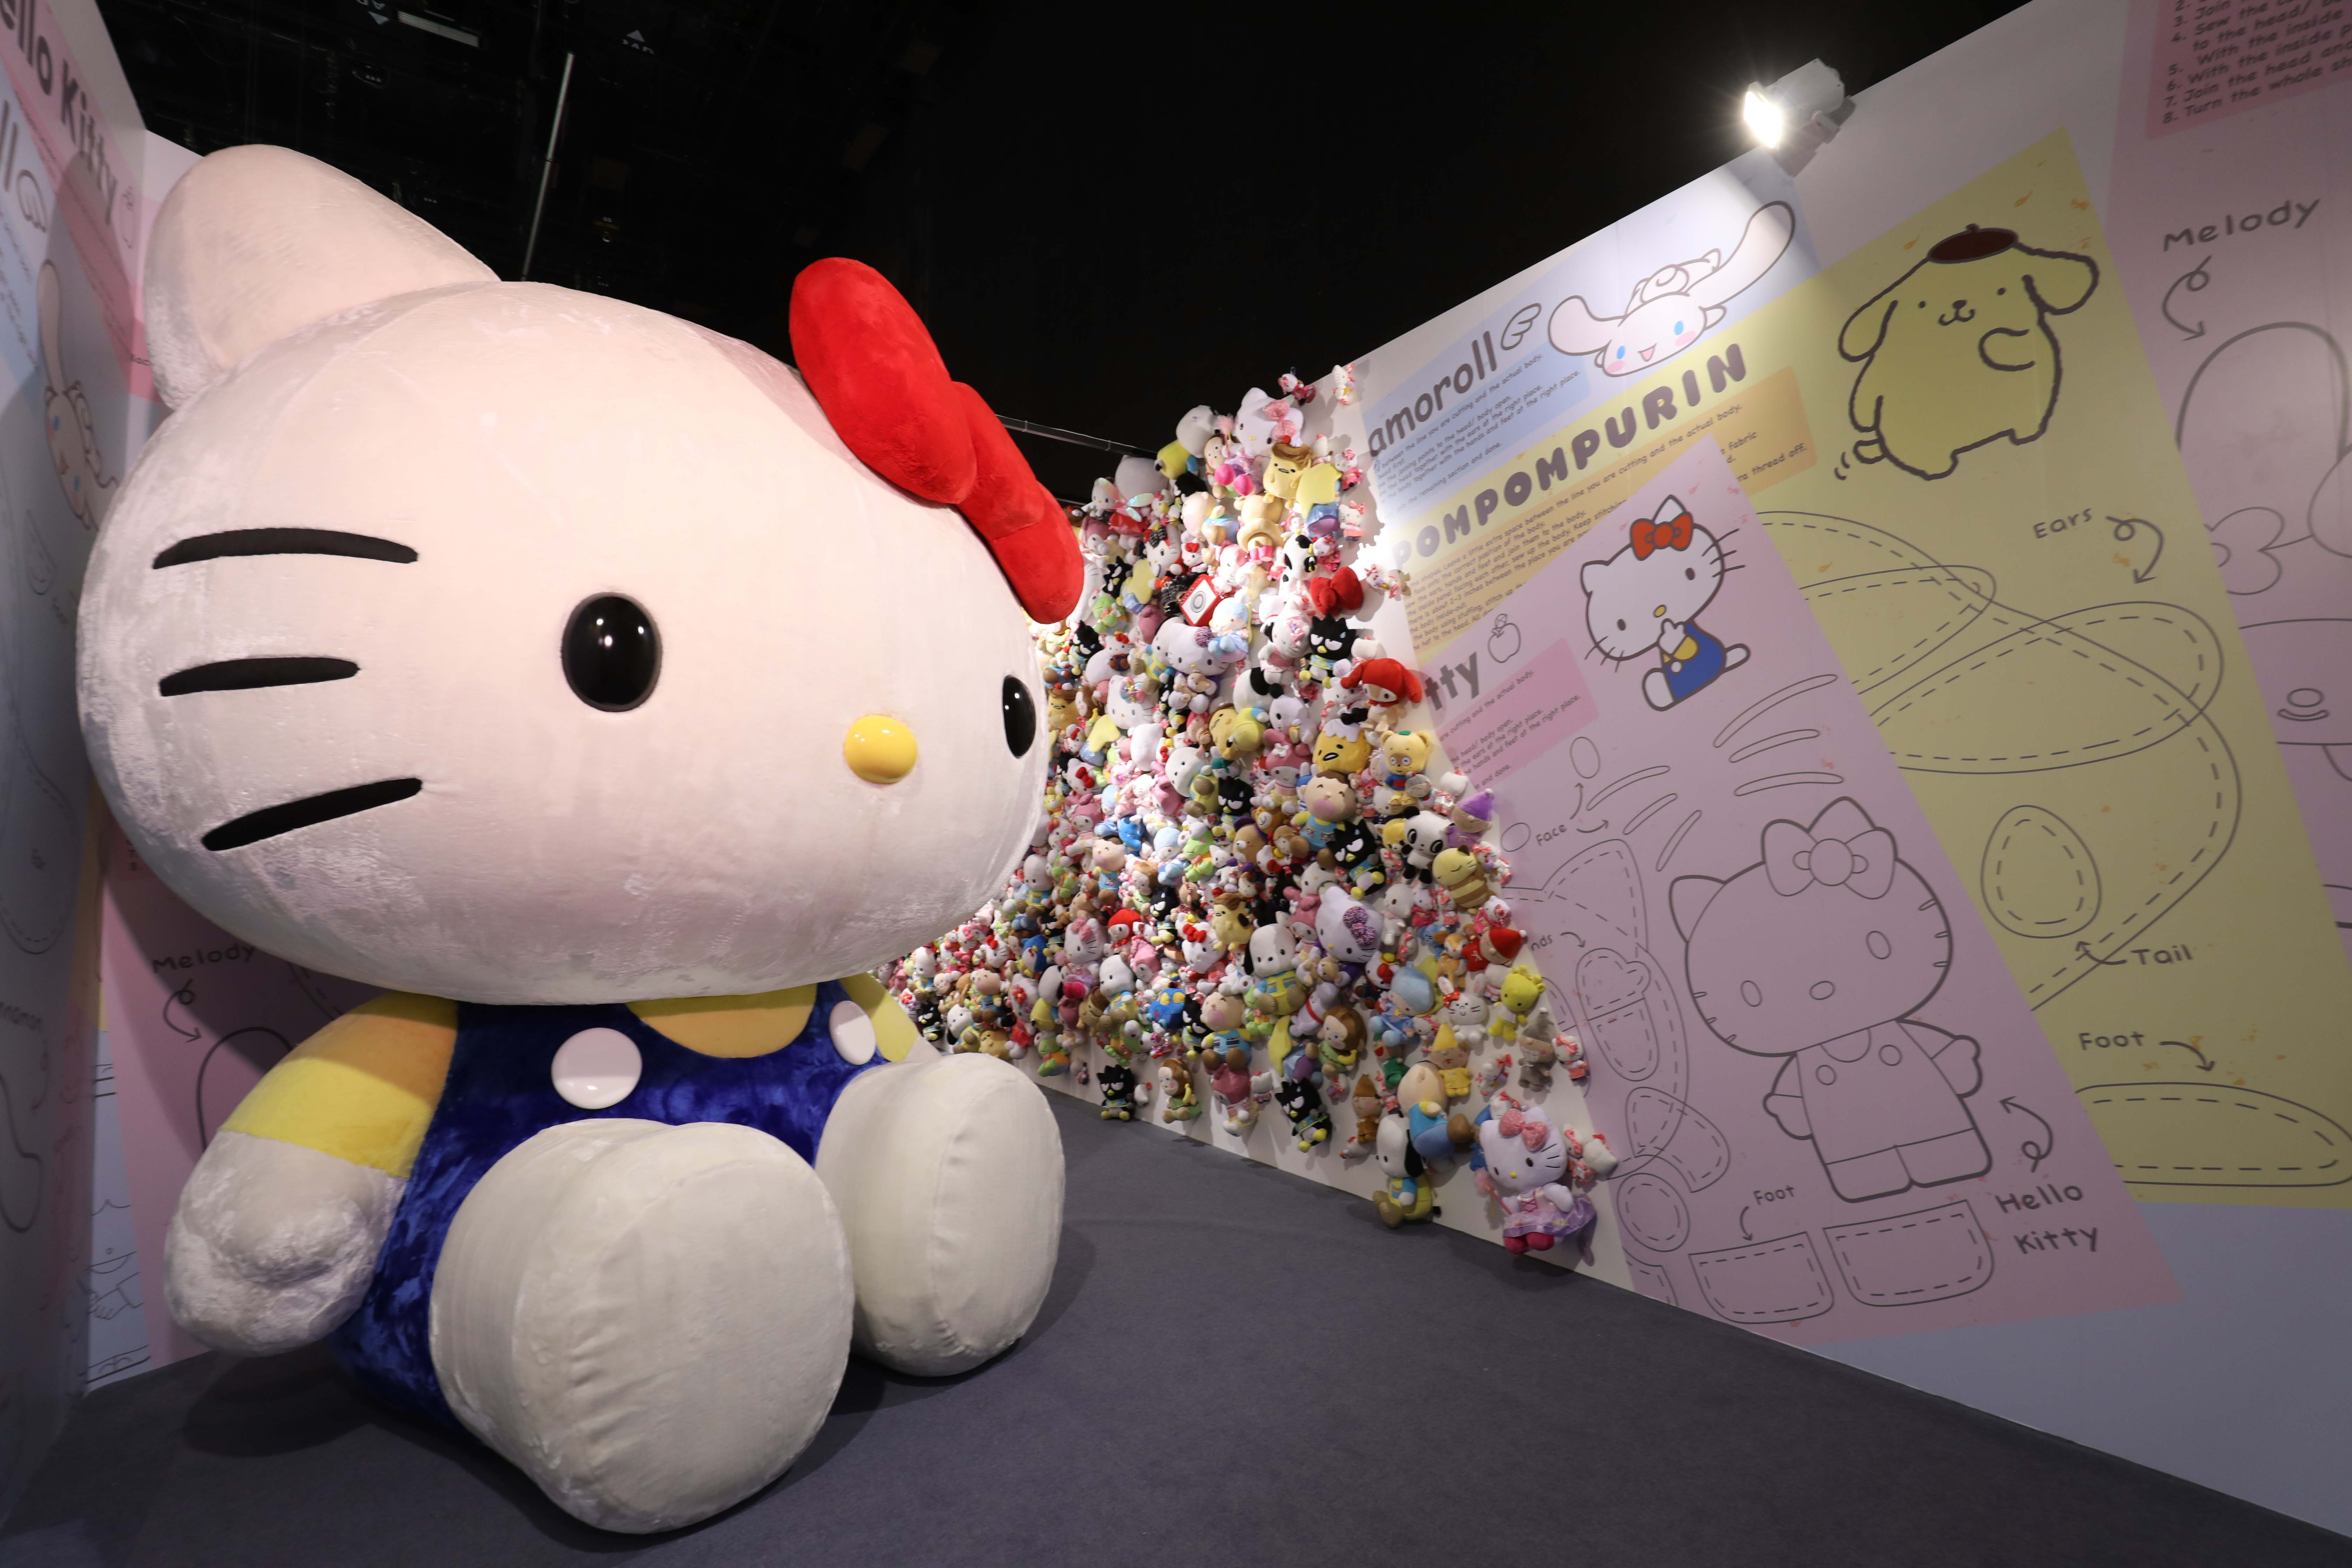 7842c2a52 As you make your way through the exhibition, you'll come across the largest  and cutest Hello Kitty plushy in the world! It's one of those rare times  when ...